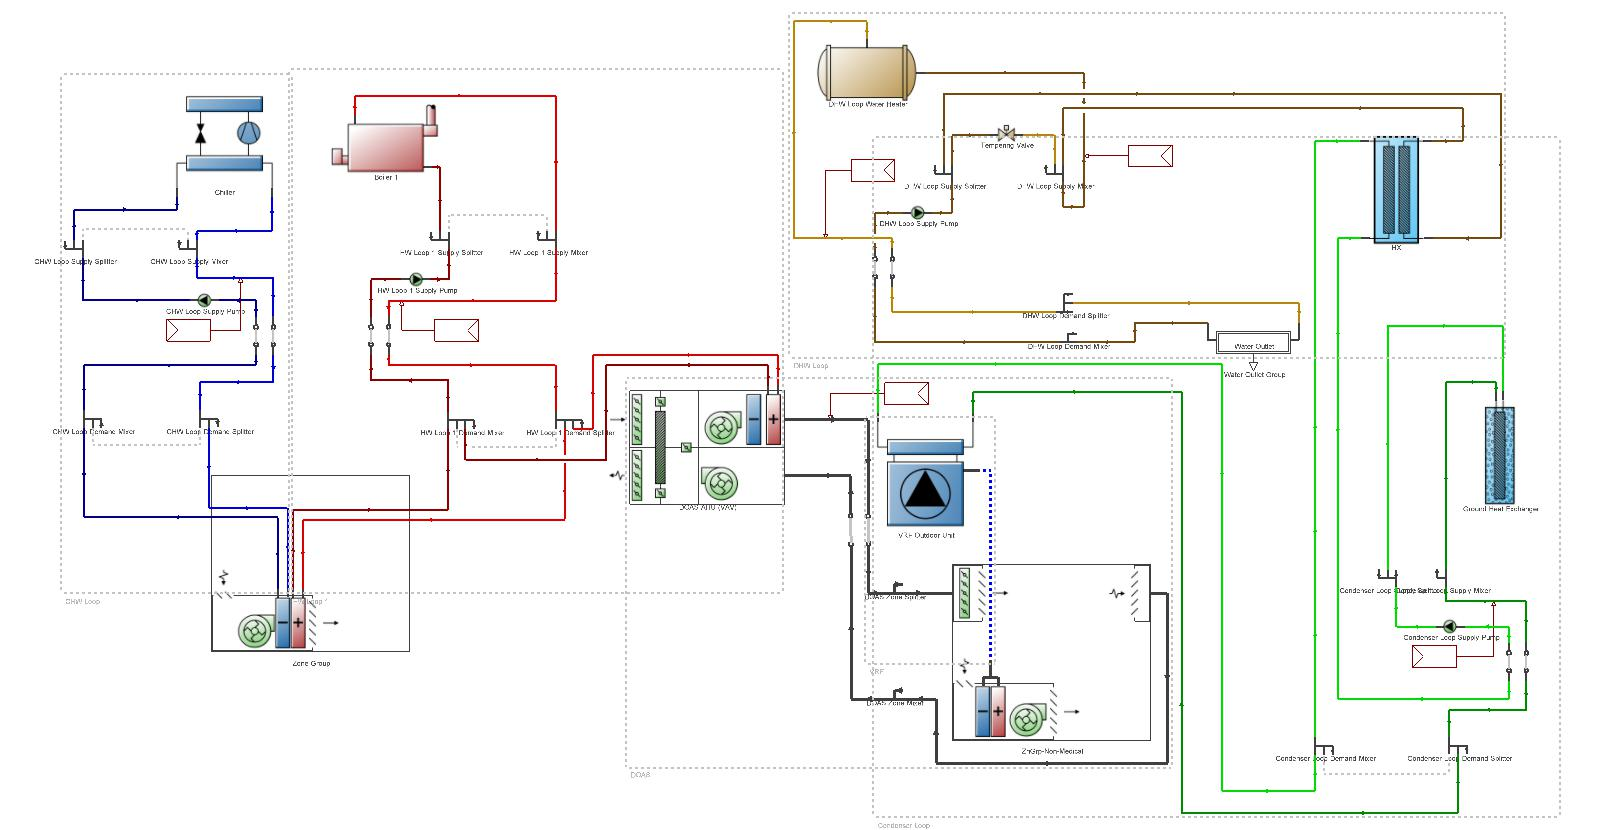 This shows the schematic of an evaporatively cooled chiller (evaporative  details not shown as schematic components but included in chiller data)  serving one ...